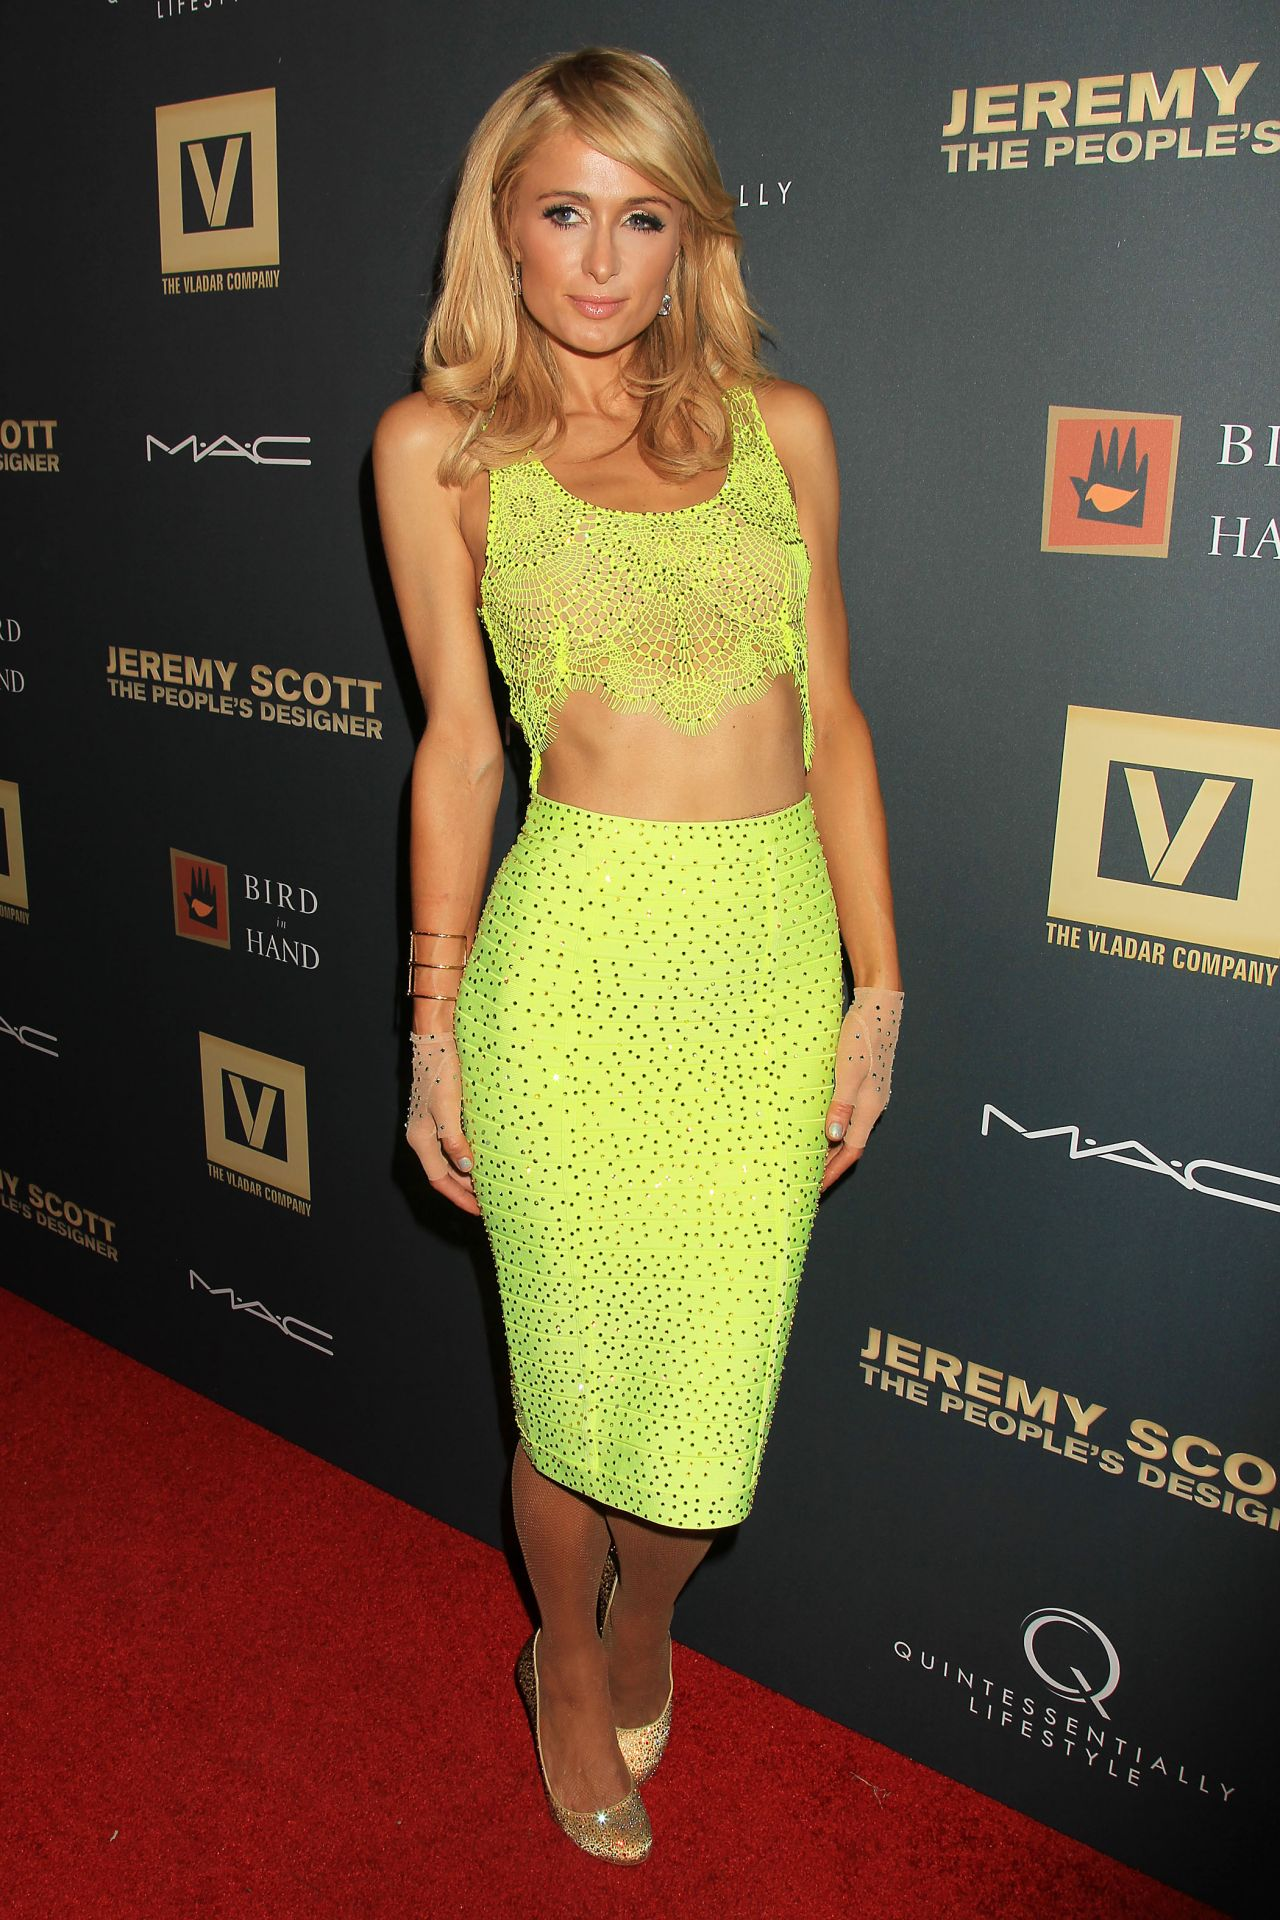 Paris Hilton – Jeremy Scott: The People's Designer Premiere in NYC Paris Hilton